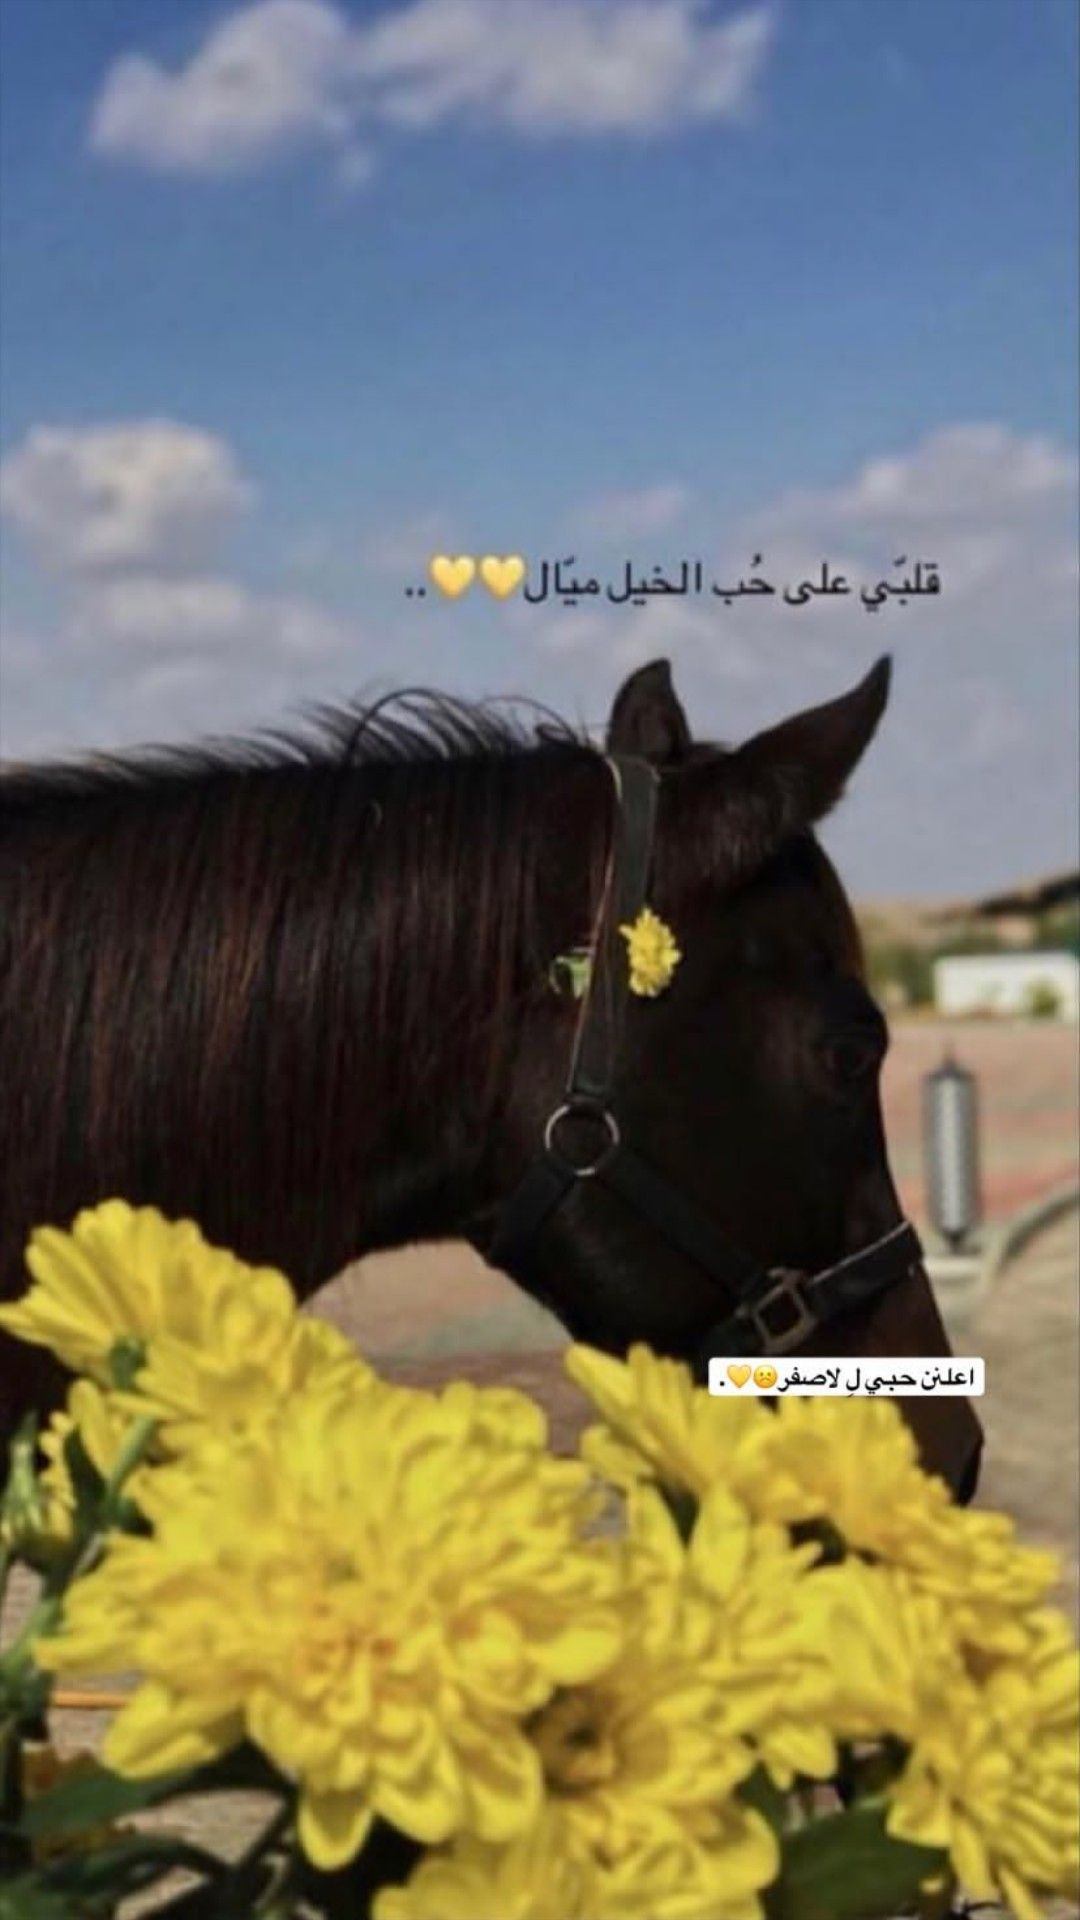 Pin By Alyya On سنابات Iphone Wallpaper Quotes Love Horses Cover Photo Quotes